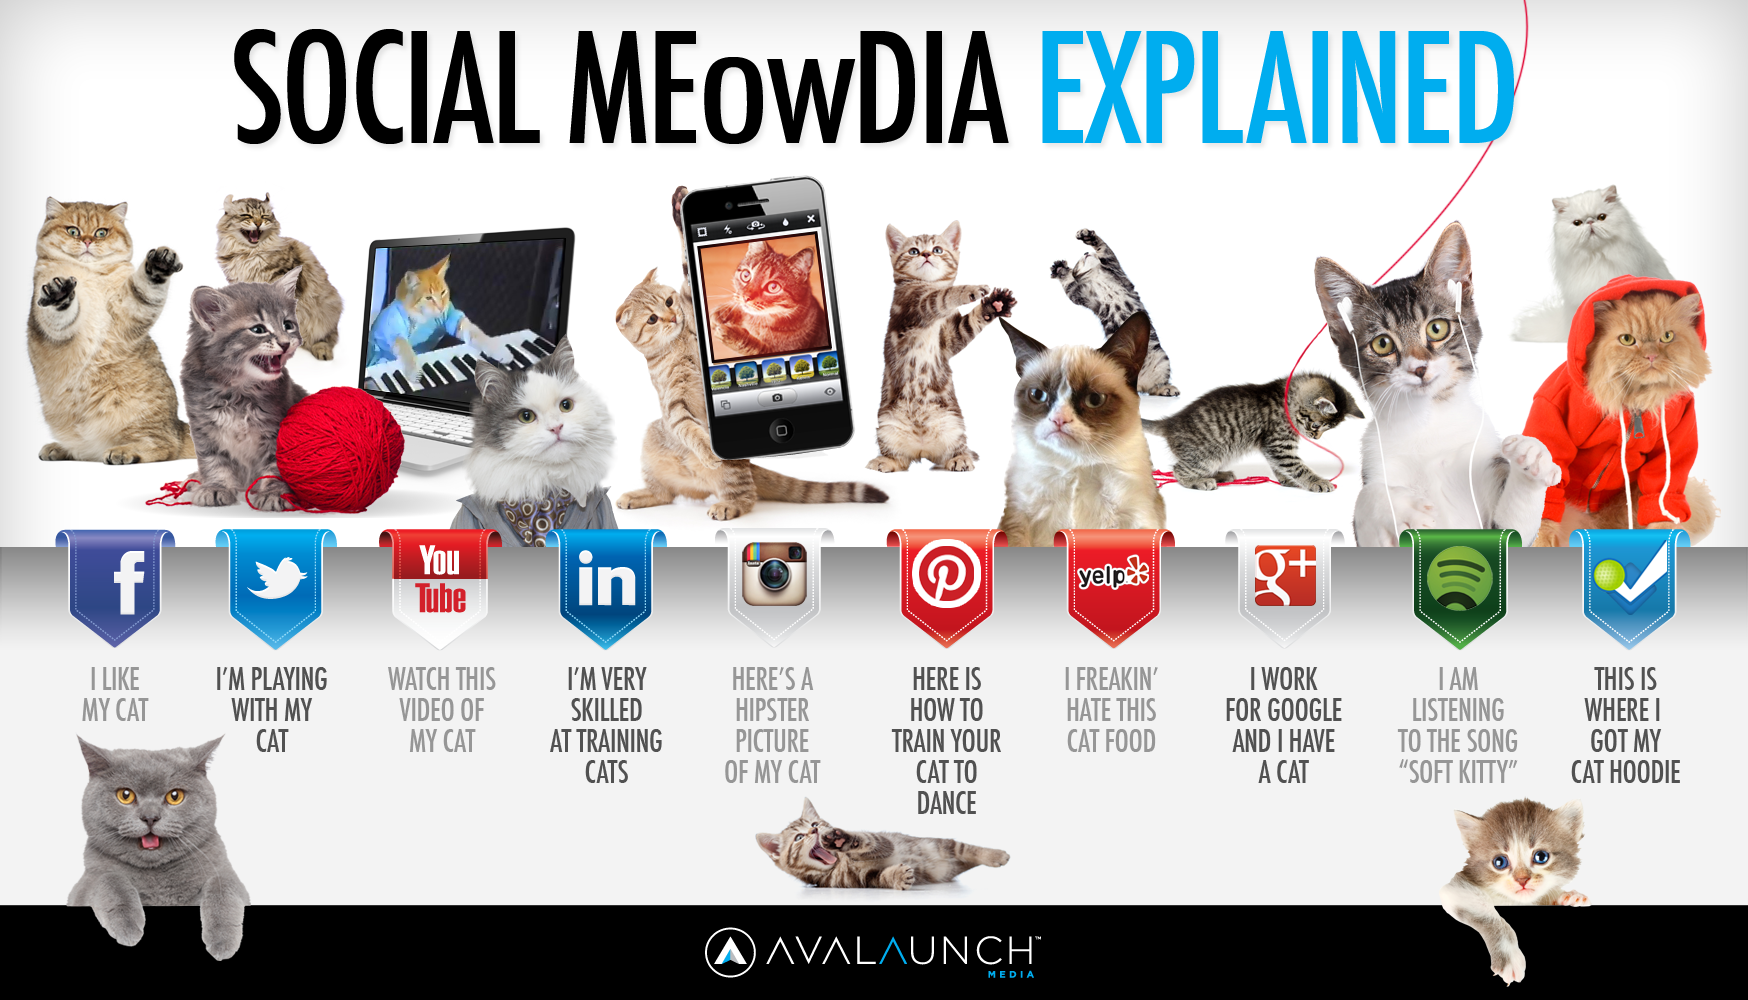 Social MEowDia Explained